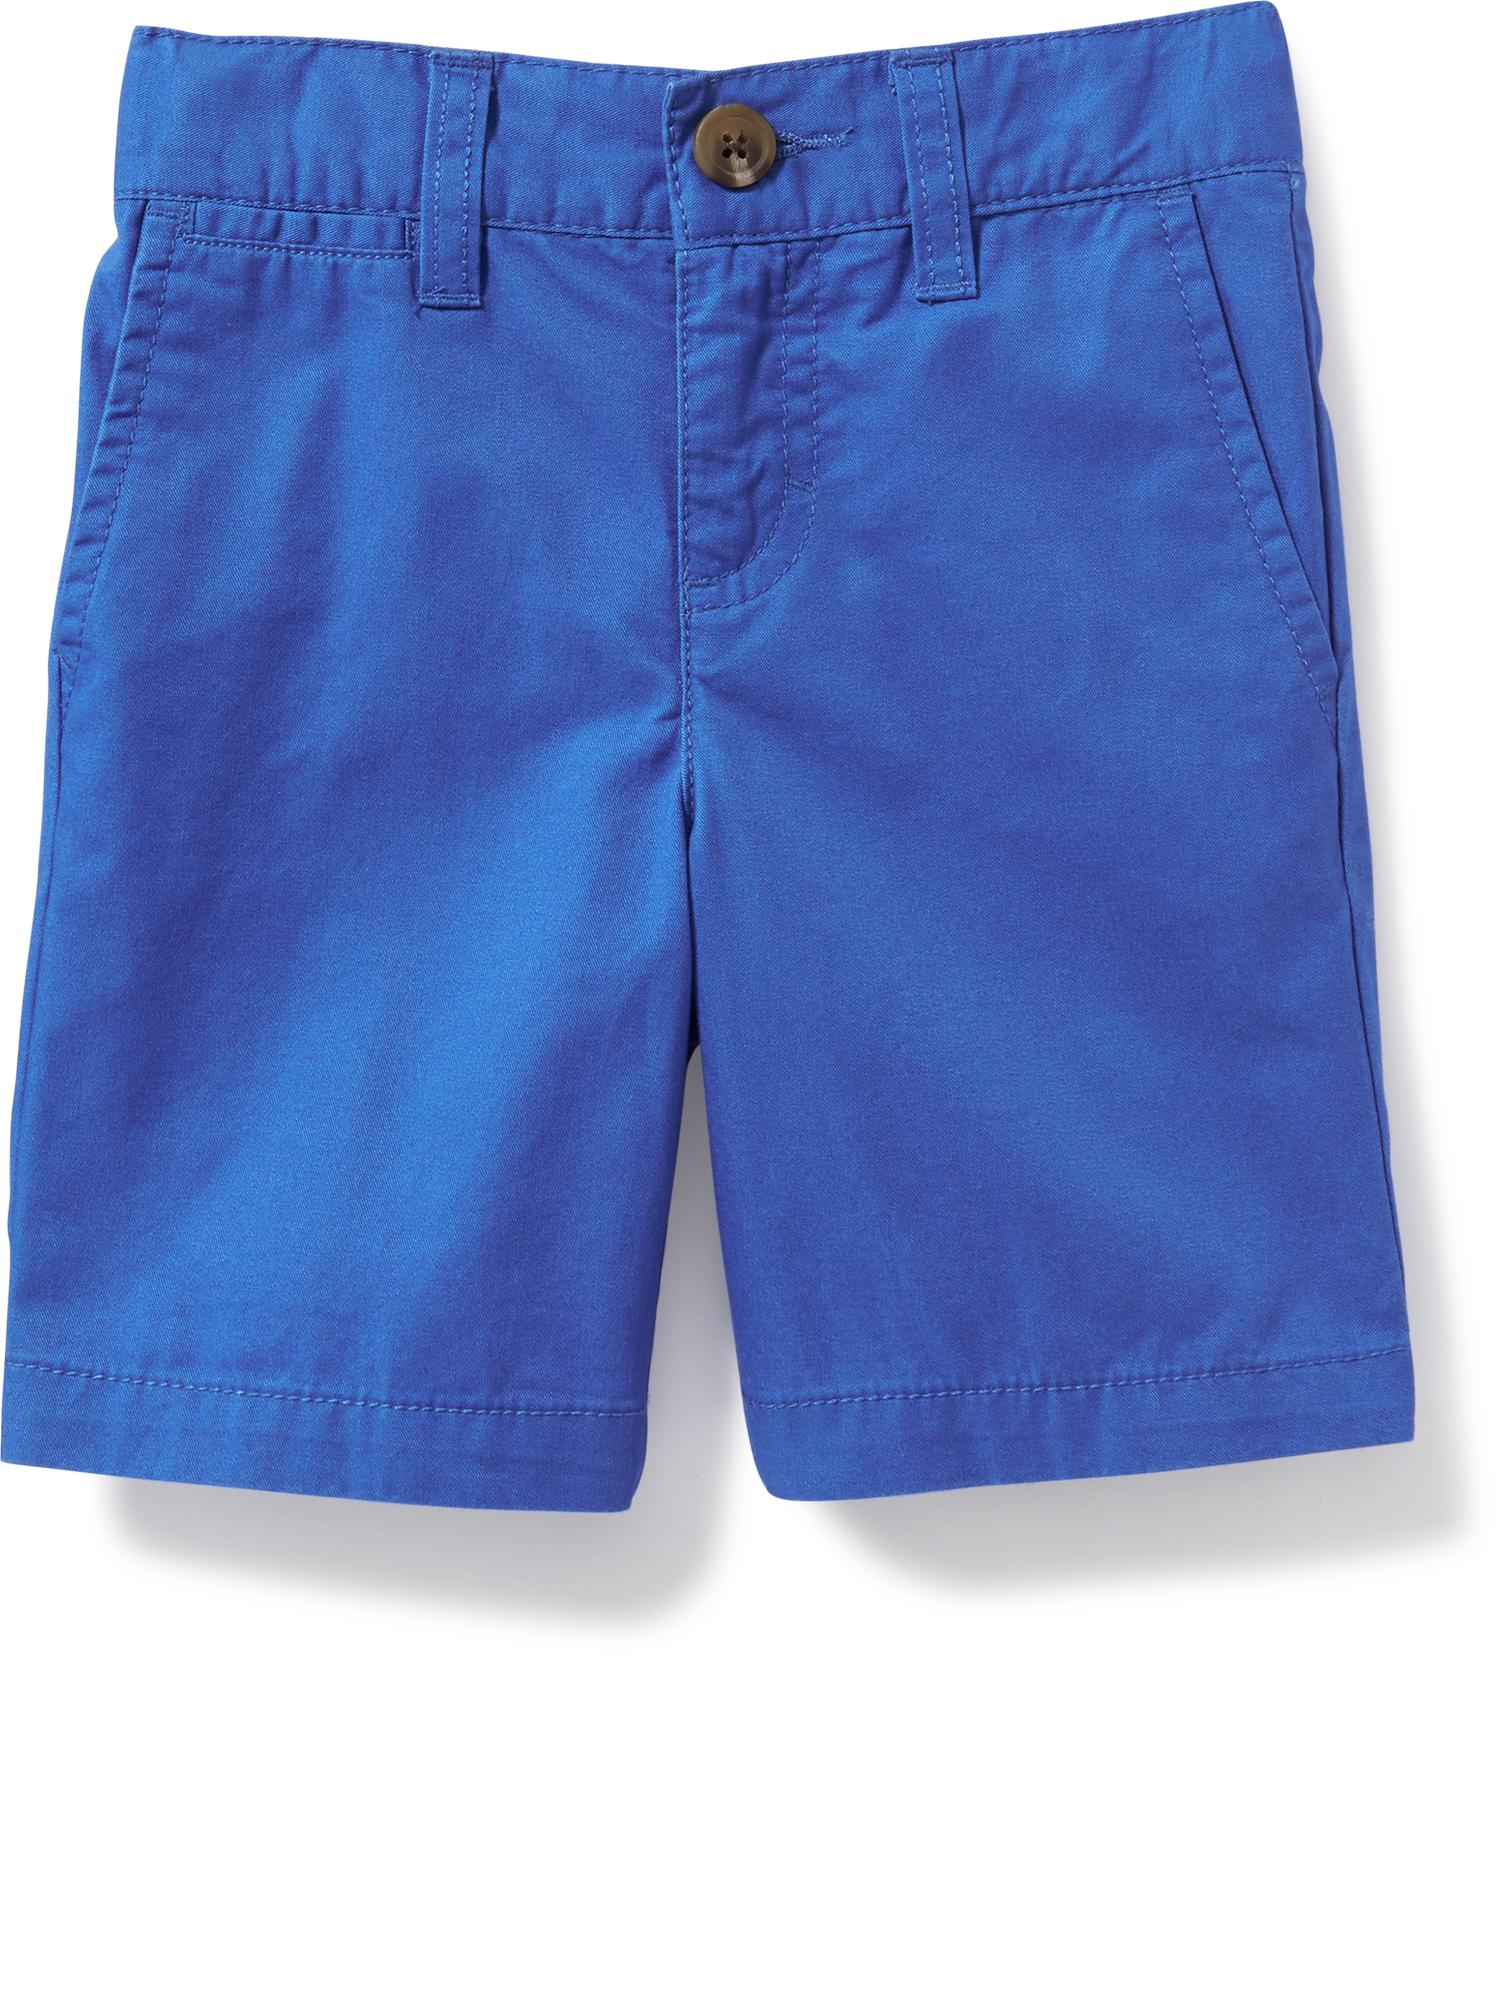 Pop-Color Khaki Shorts for Toddler Boys | Old Navy